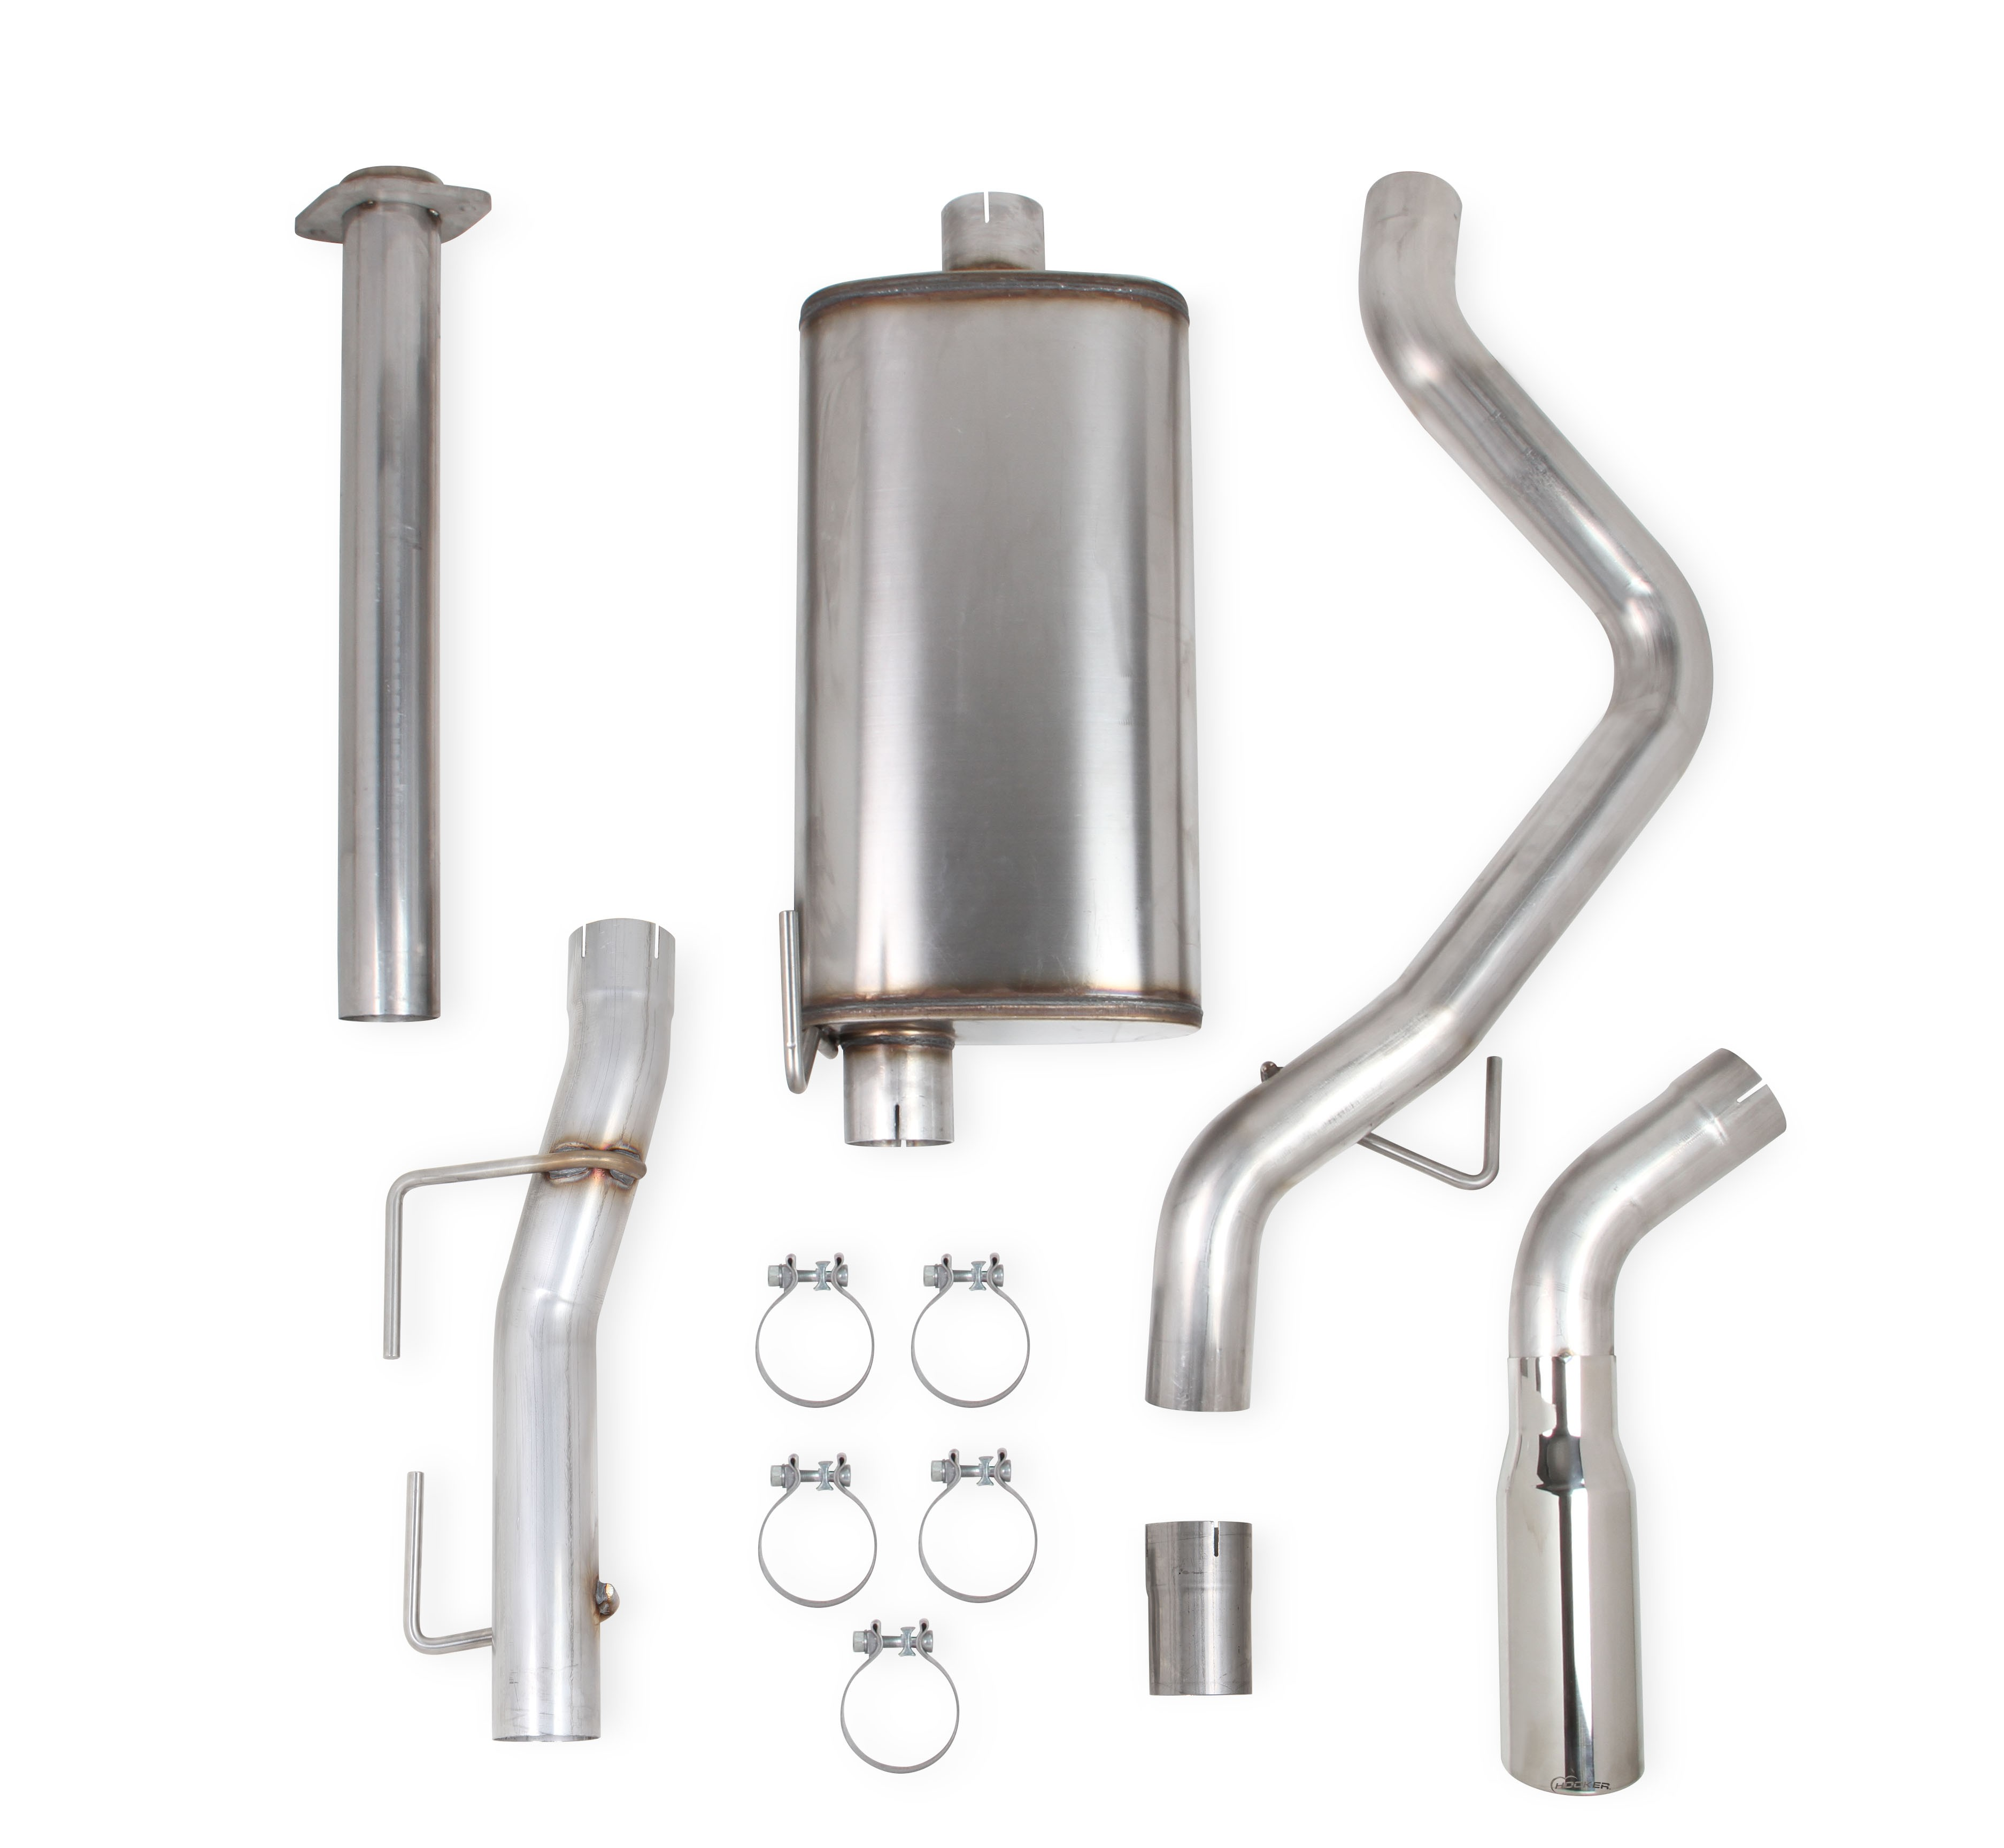 2011-2014 Ford F150 EcoBoost 3.5L V6, Stainless Steel Cat-Back, Single Exit